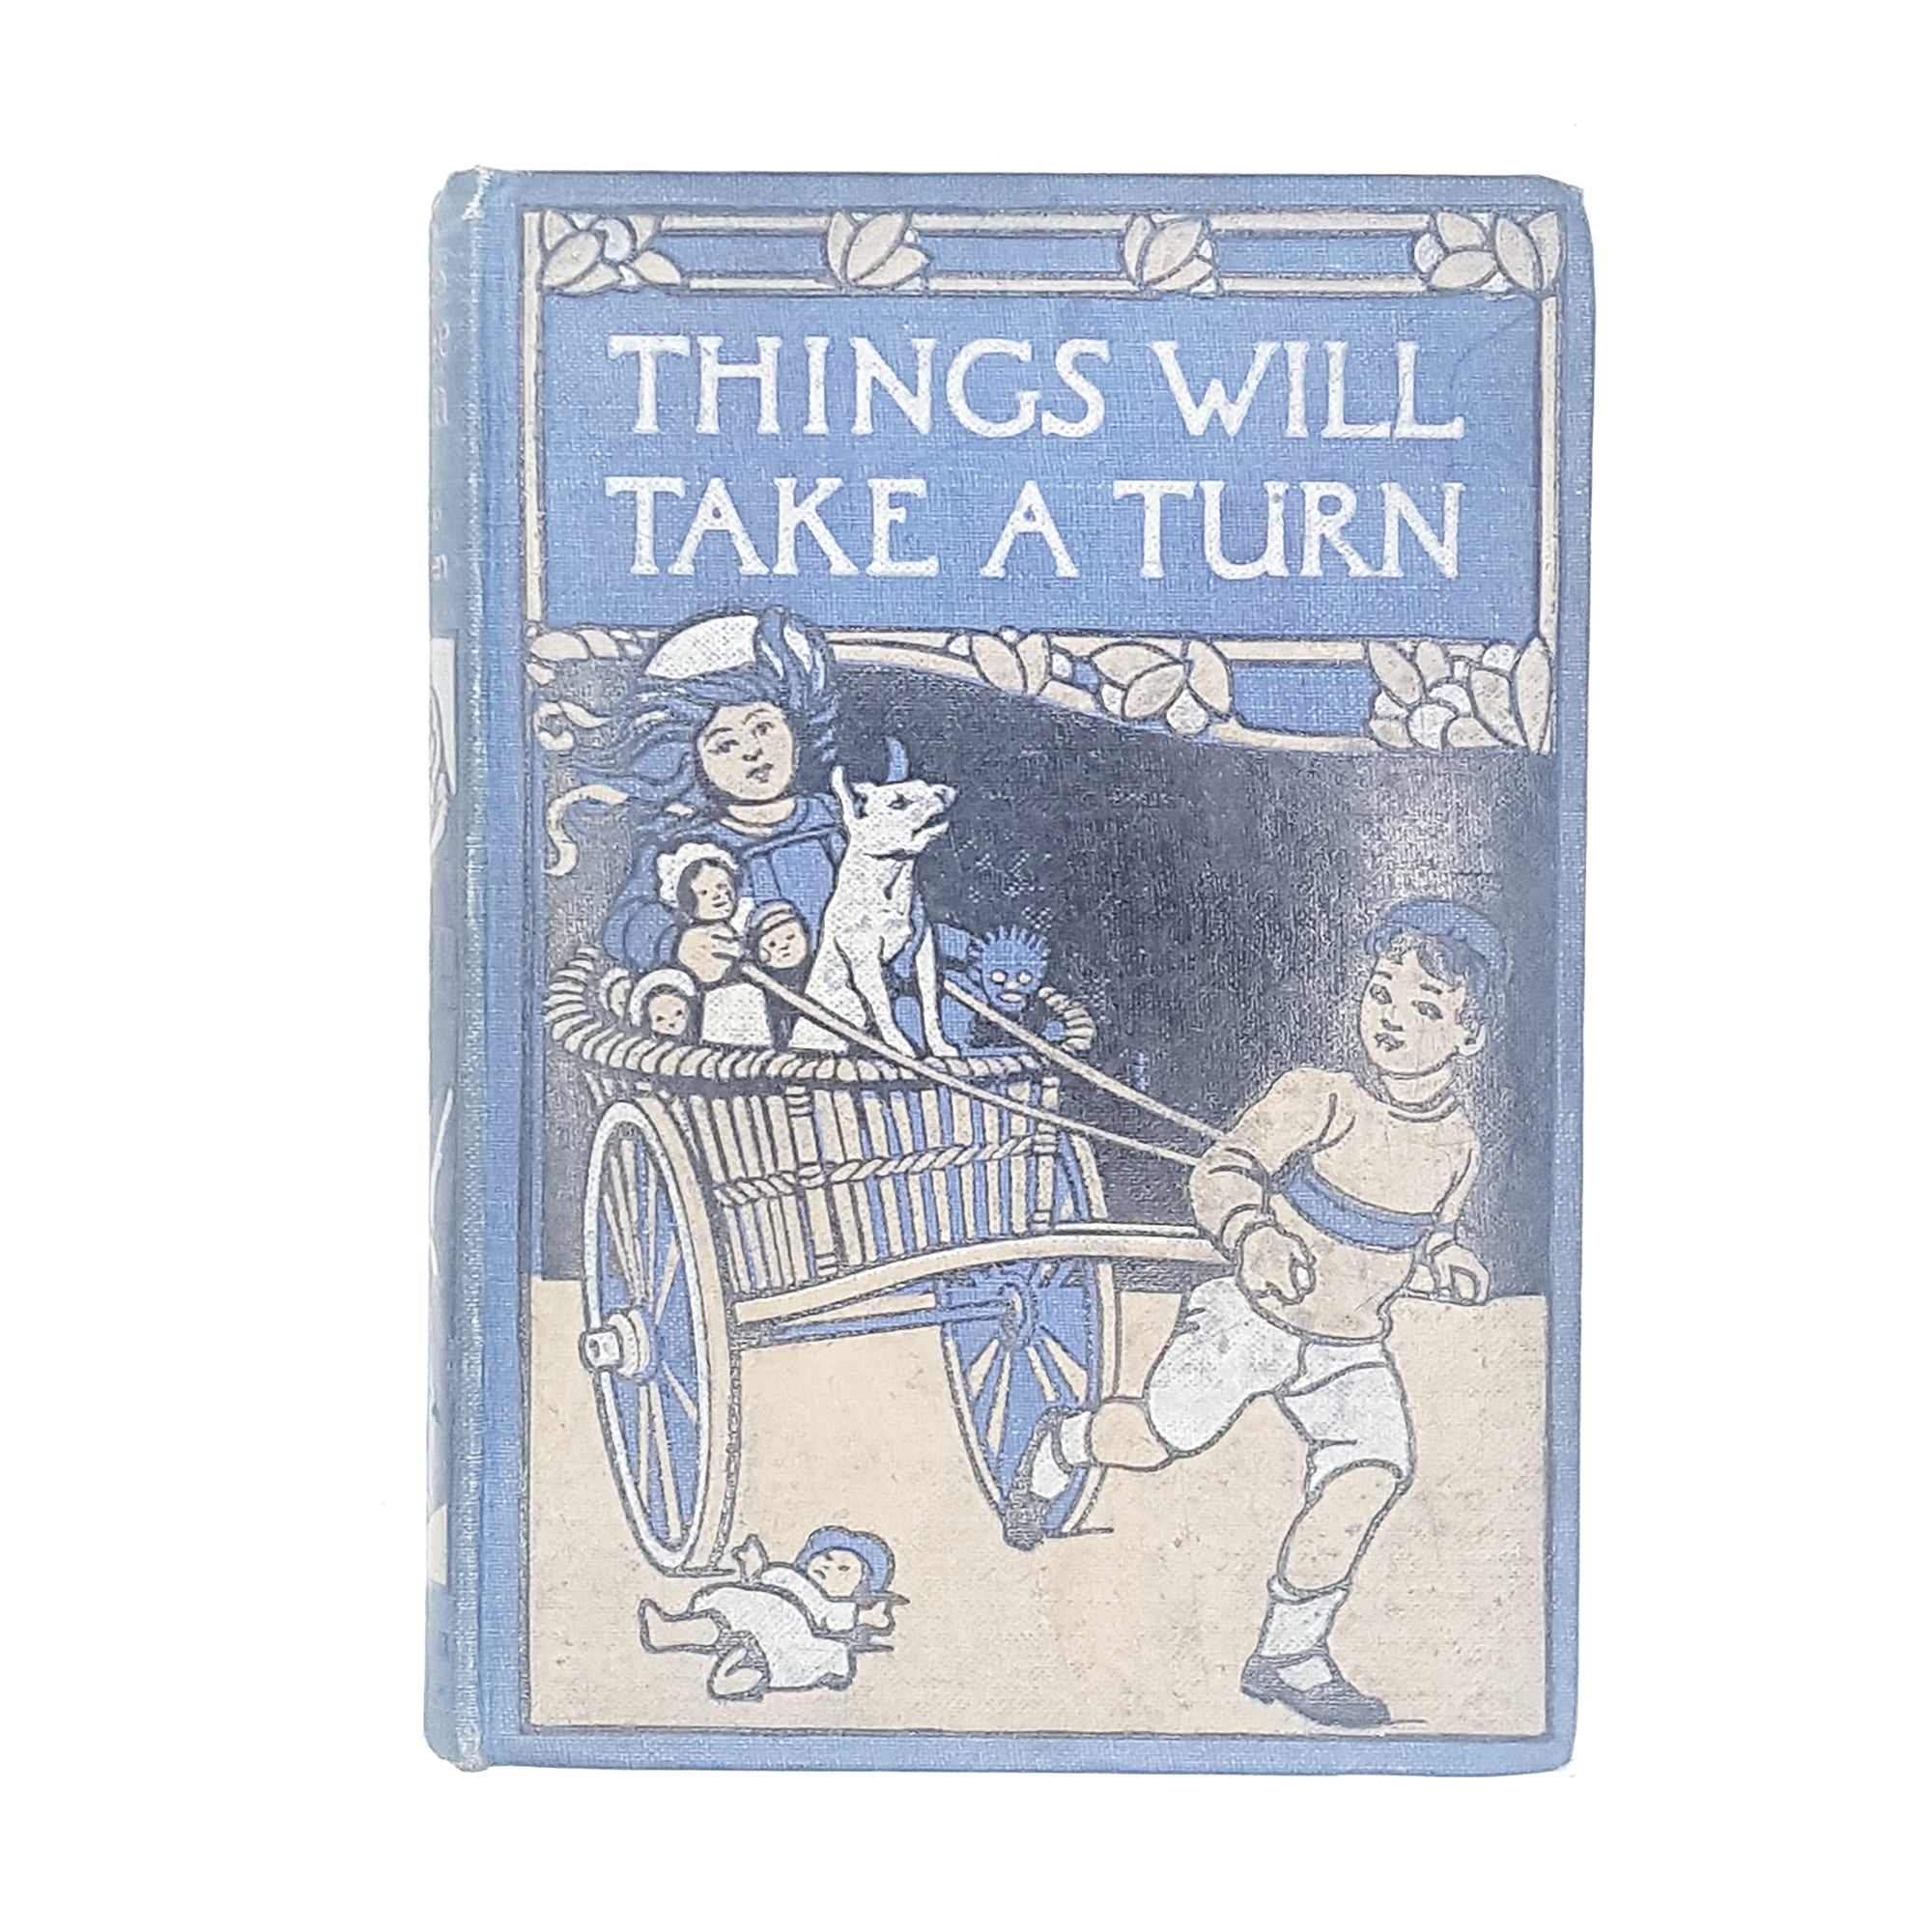 Things will Take a Turn by Beatrive Harraden 1910s